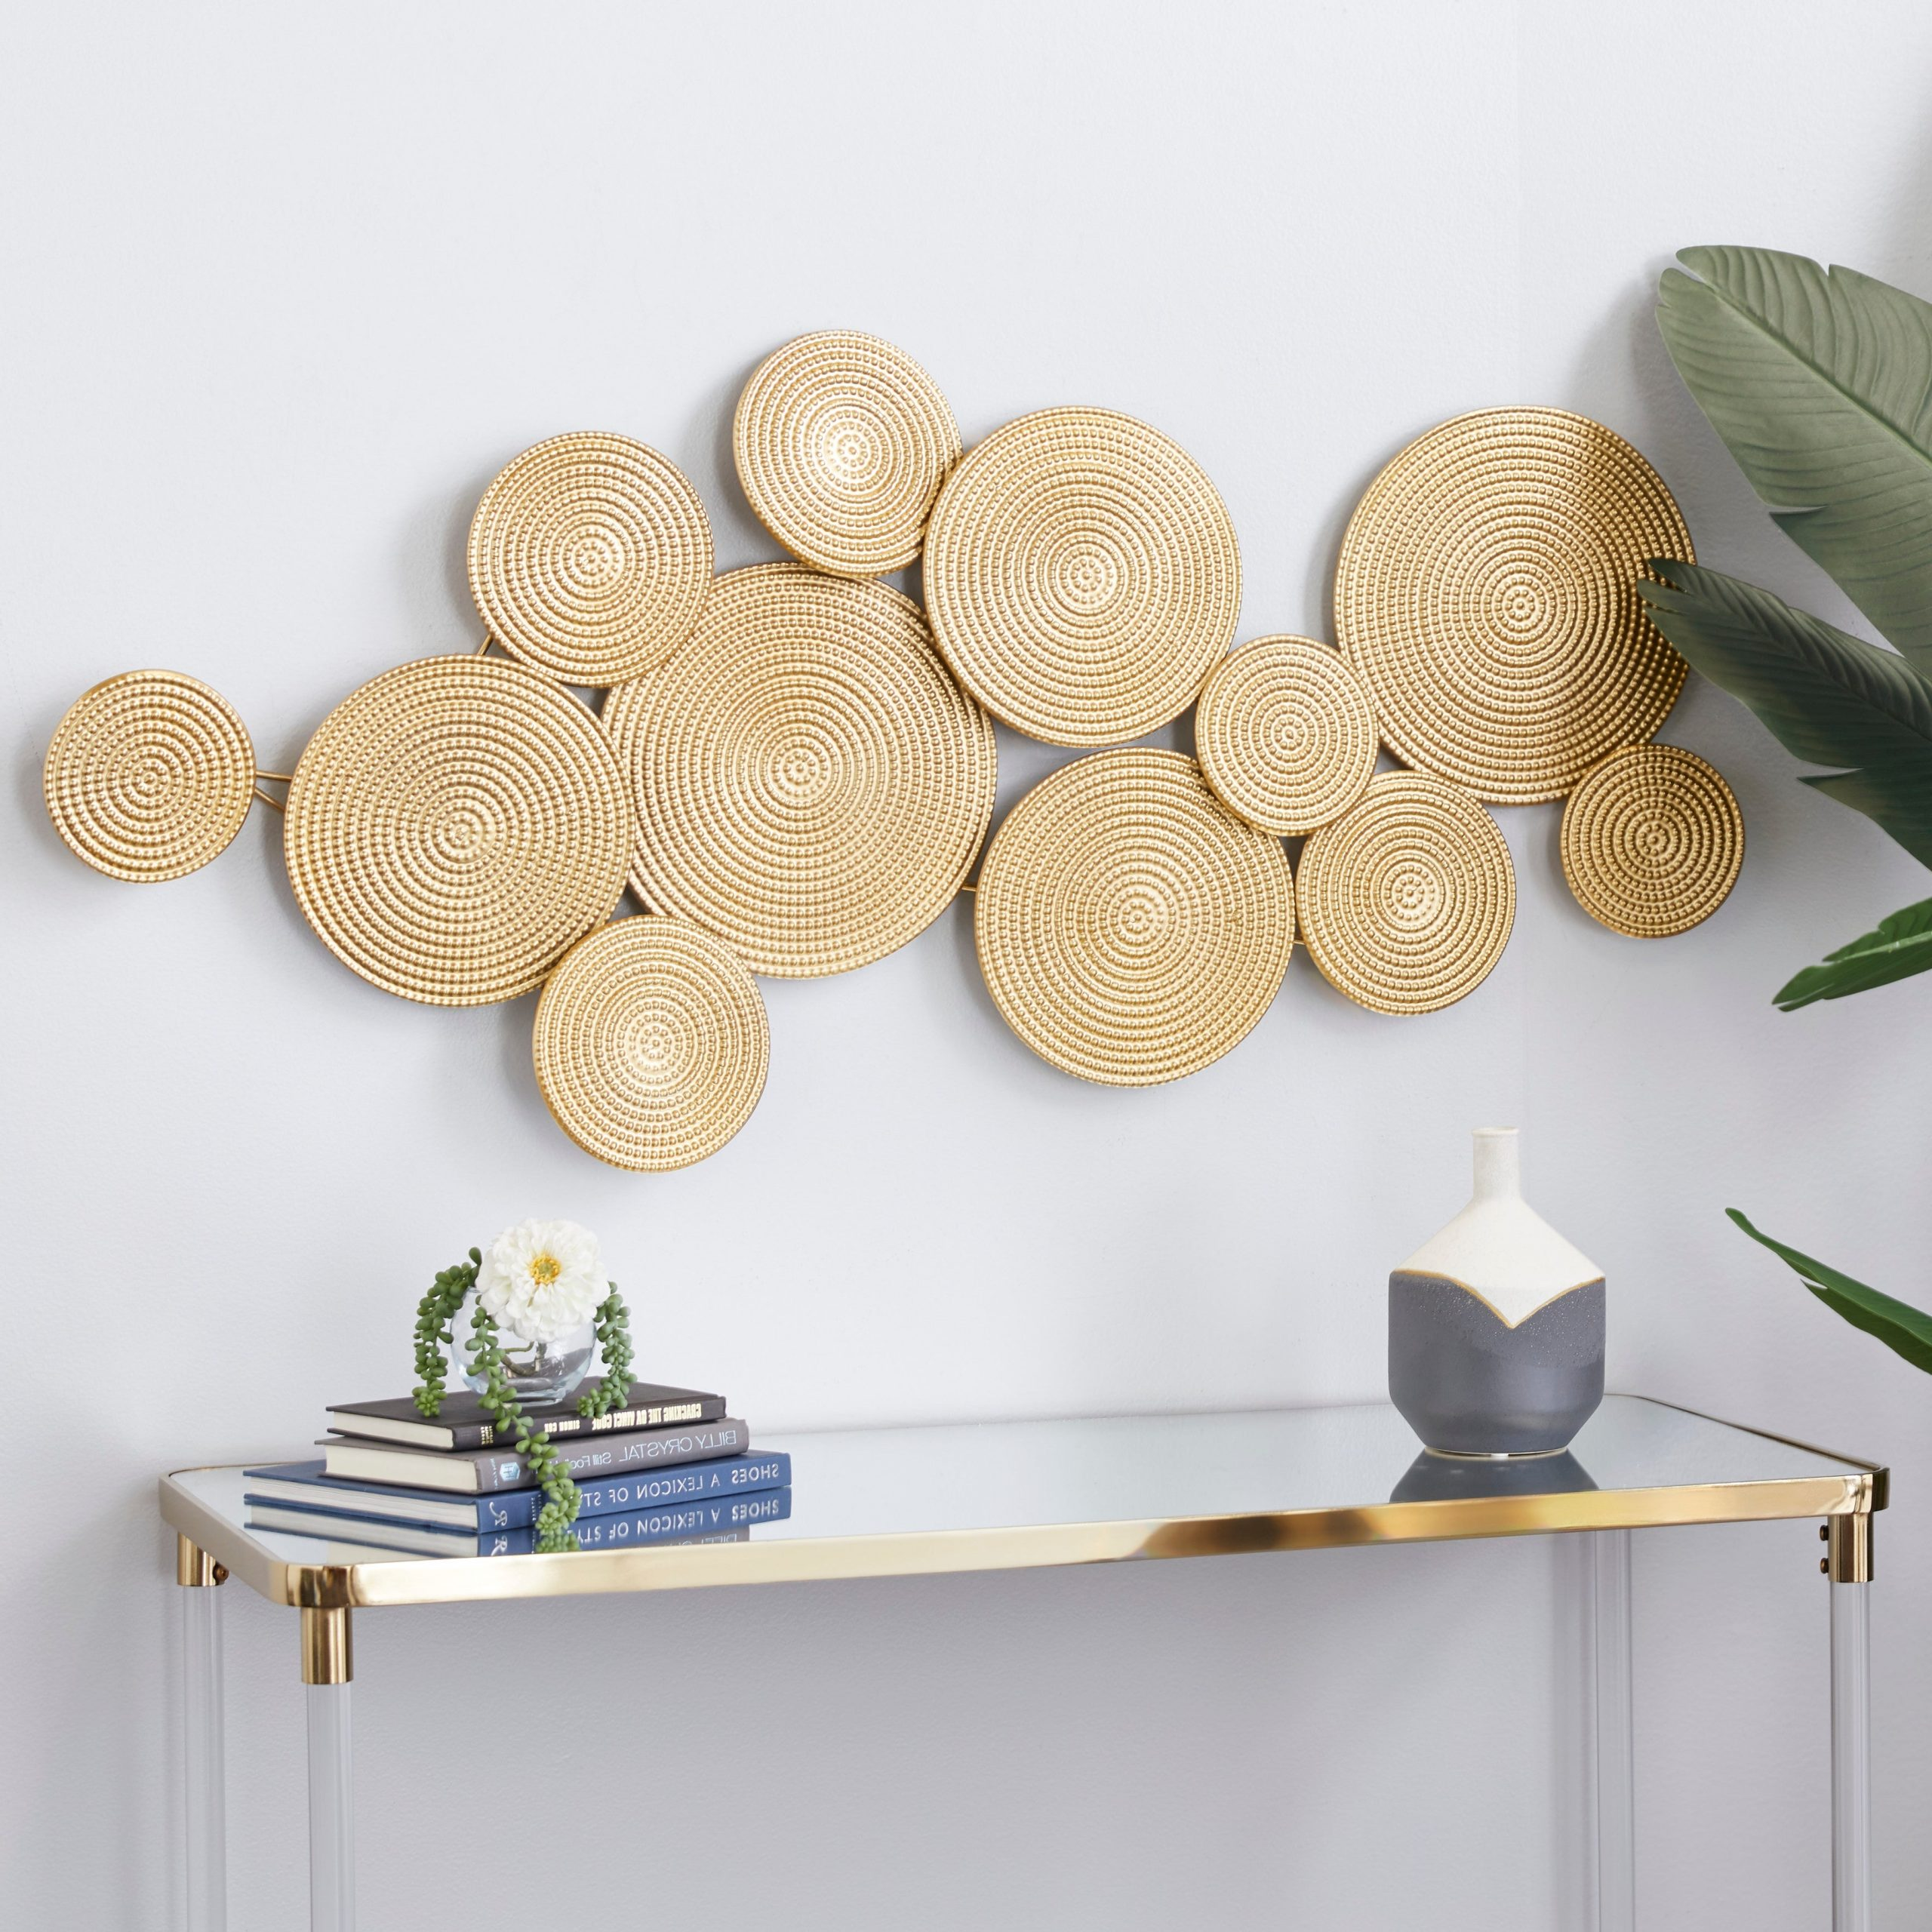 Metal Wall Décor By Cosmoliving In 2020 Cosmolivingcosmopolitan Gold Metal Wall Decor 24 X 49 X 3 – 49 X 3 X (View 3 of 20)